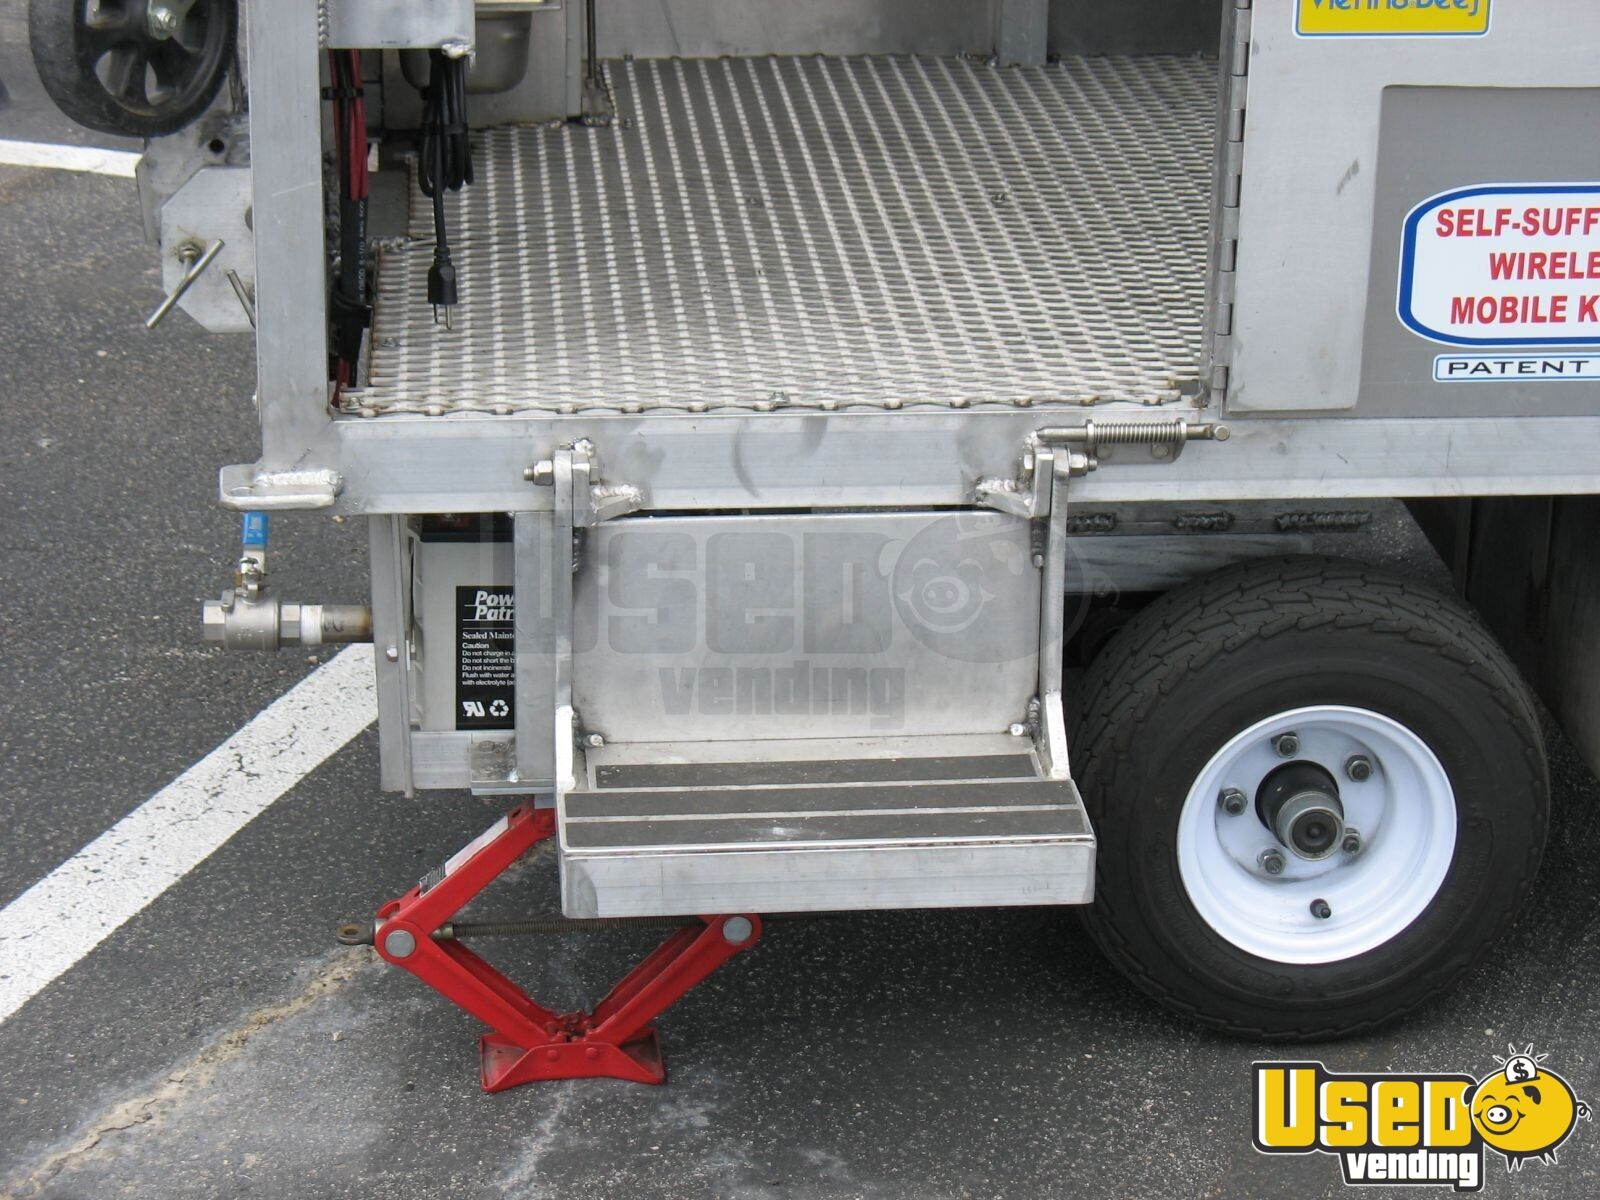 2009 Top Gun Top Dog Self Sufficient Mobile, Model Slt Cart 16 Texas for Sale - 16